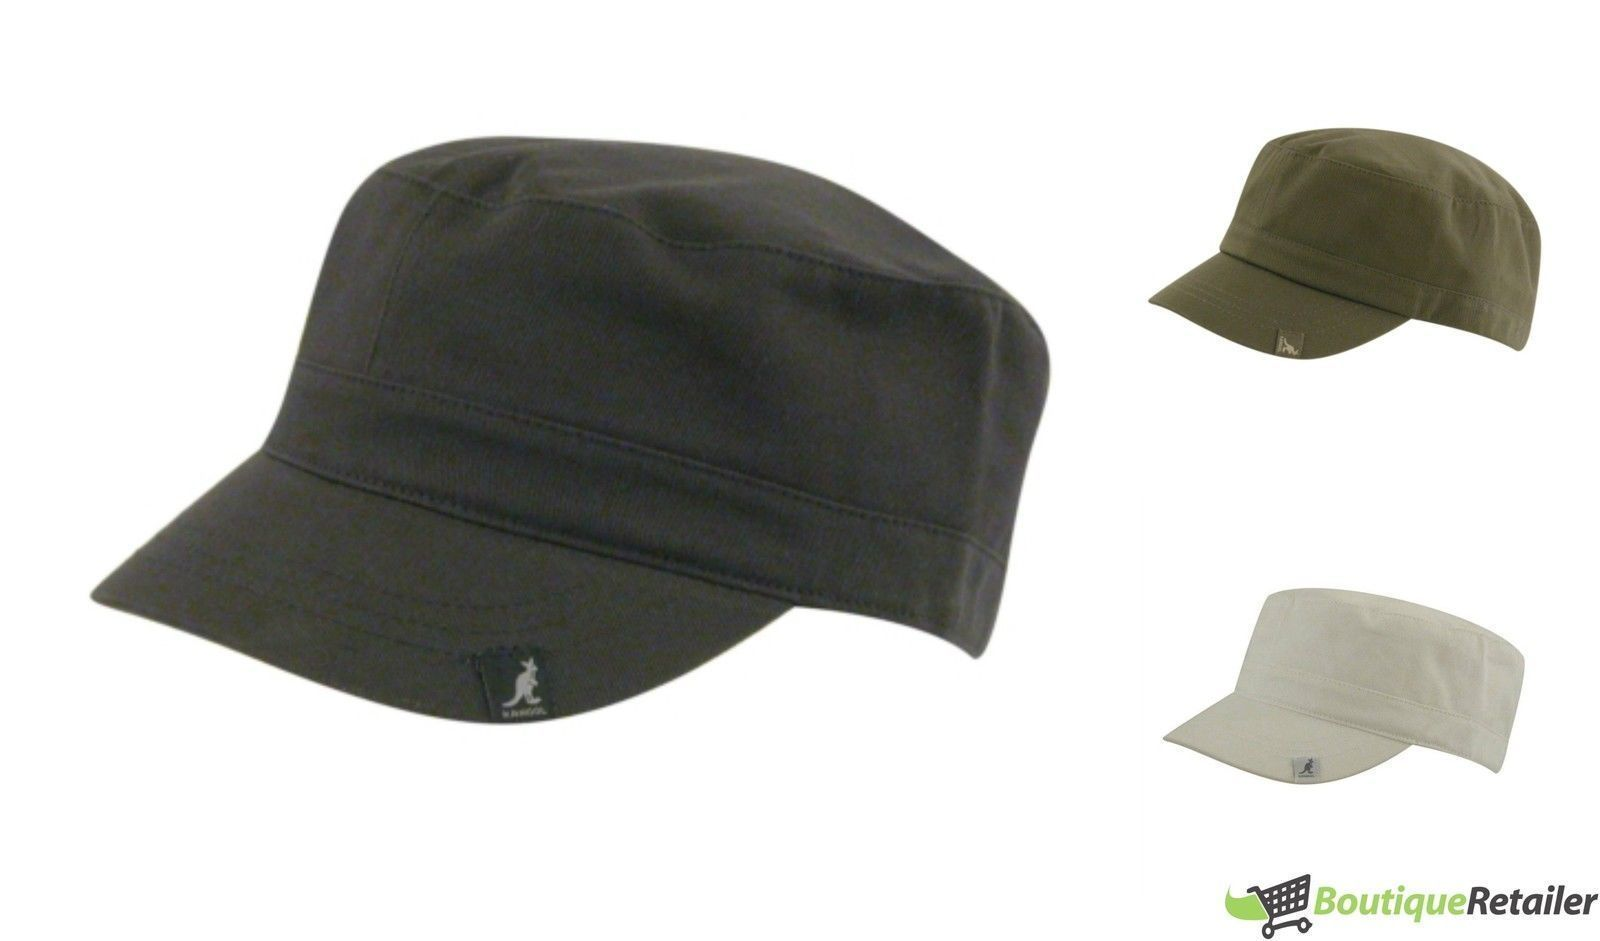 KANGOL 100% Cotton Adjustable Army Cap Military Style Cadet Hat ... e532741be2e